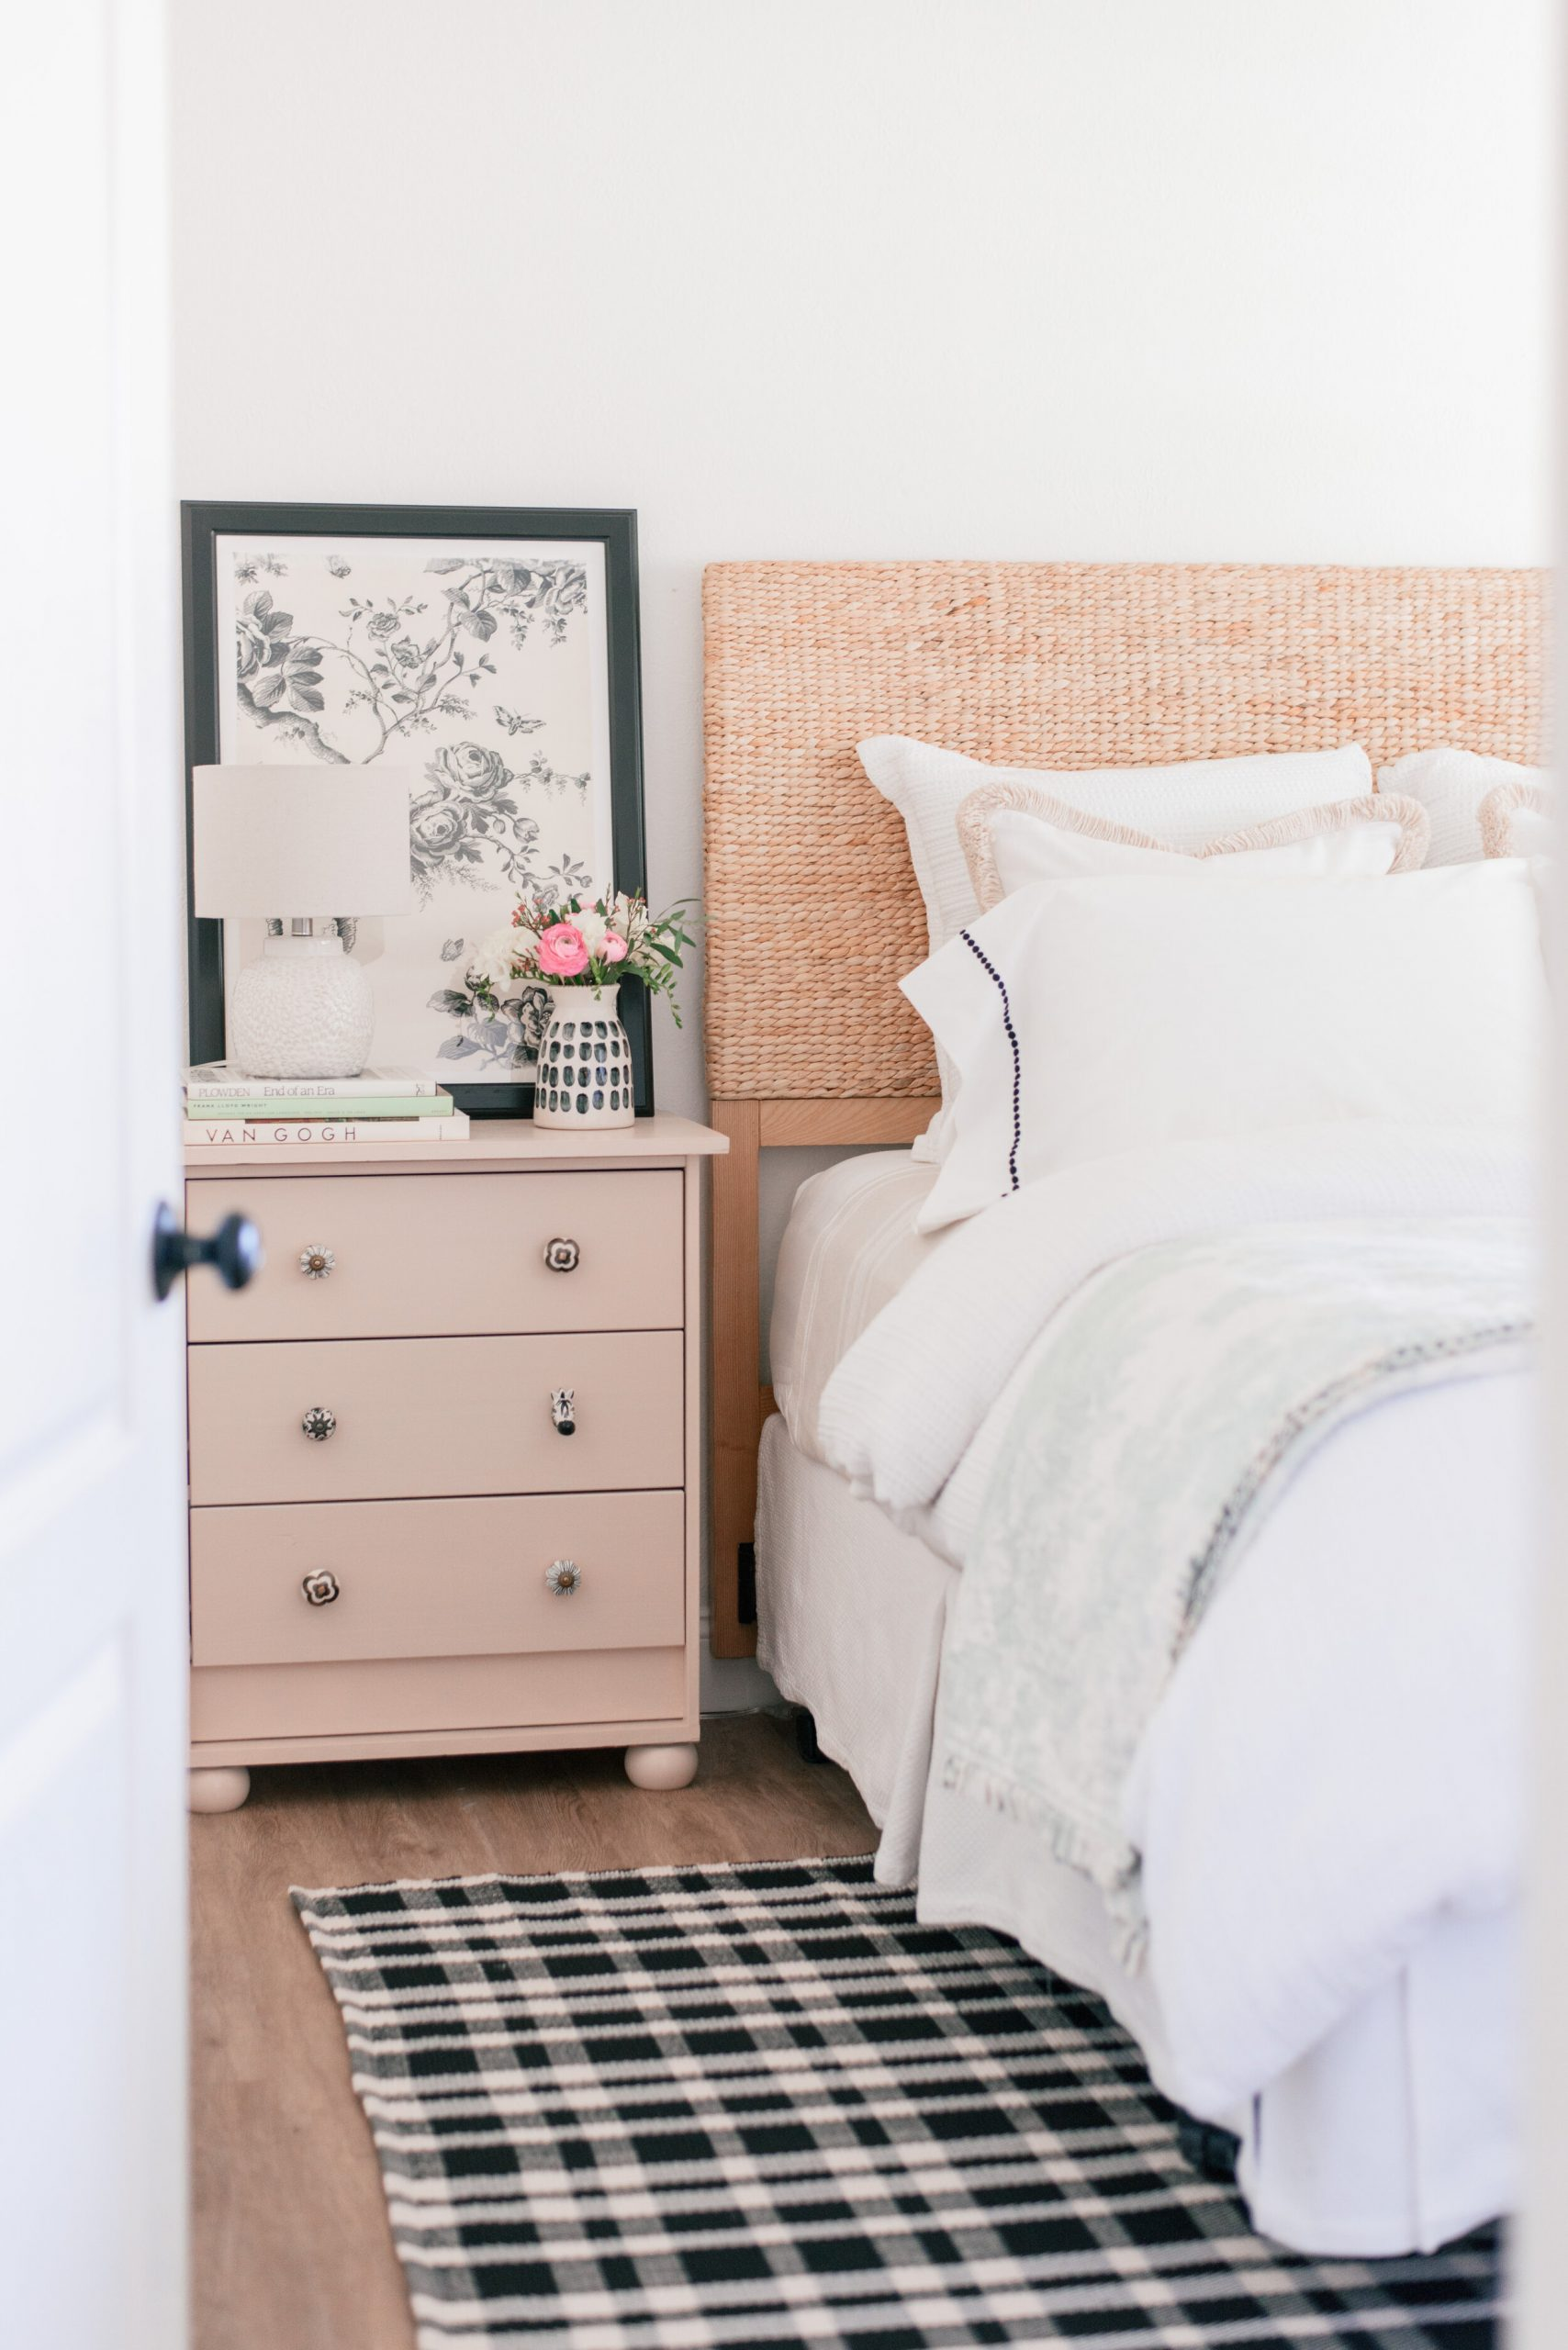 Budget-Friendly Cottage Headboards We Love: Upholstered, Wood, Seagrass, Metal & More